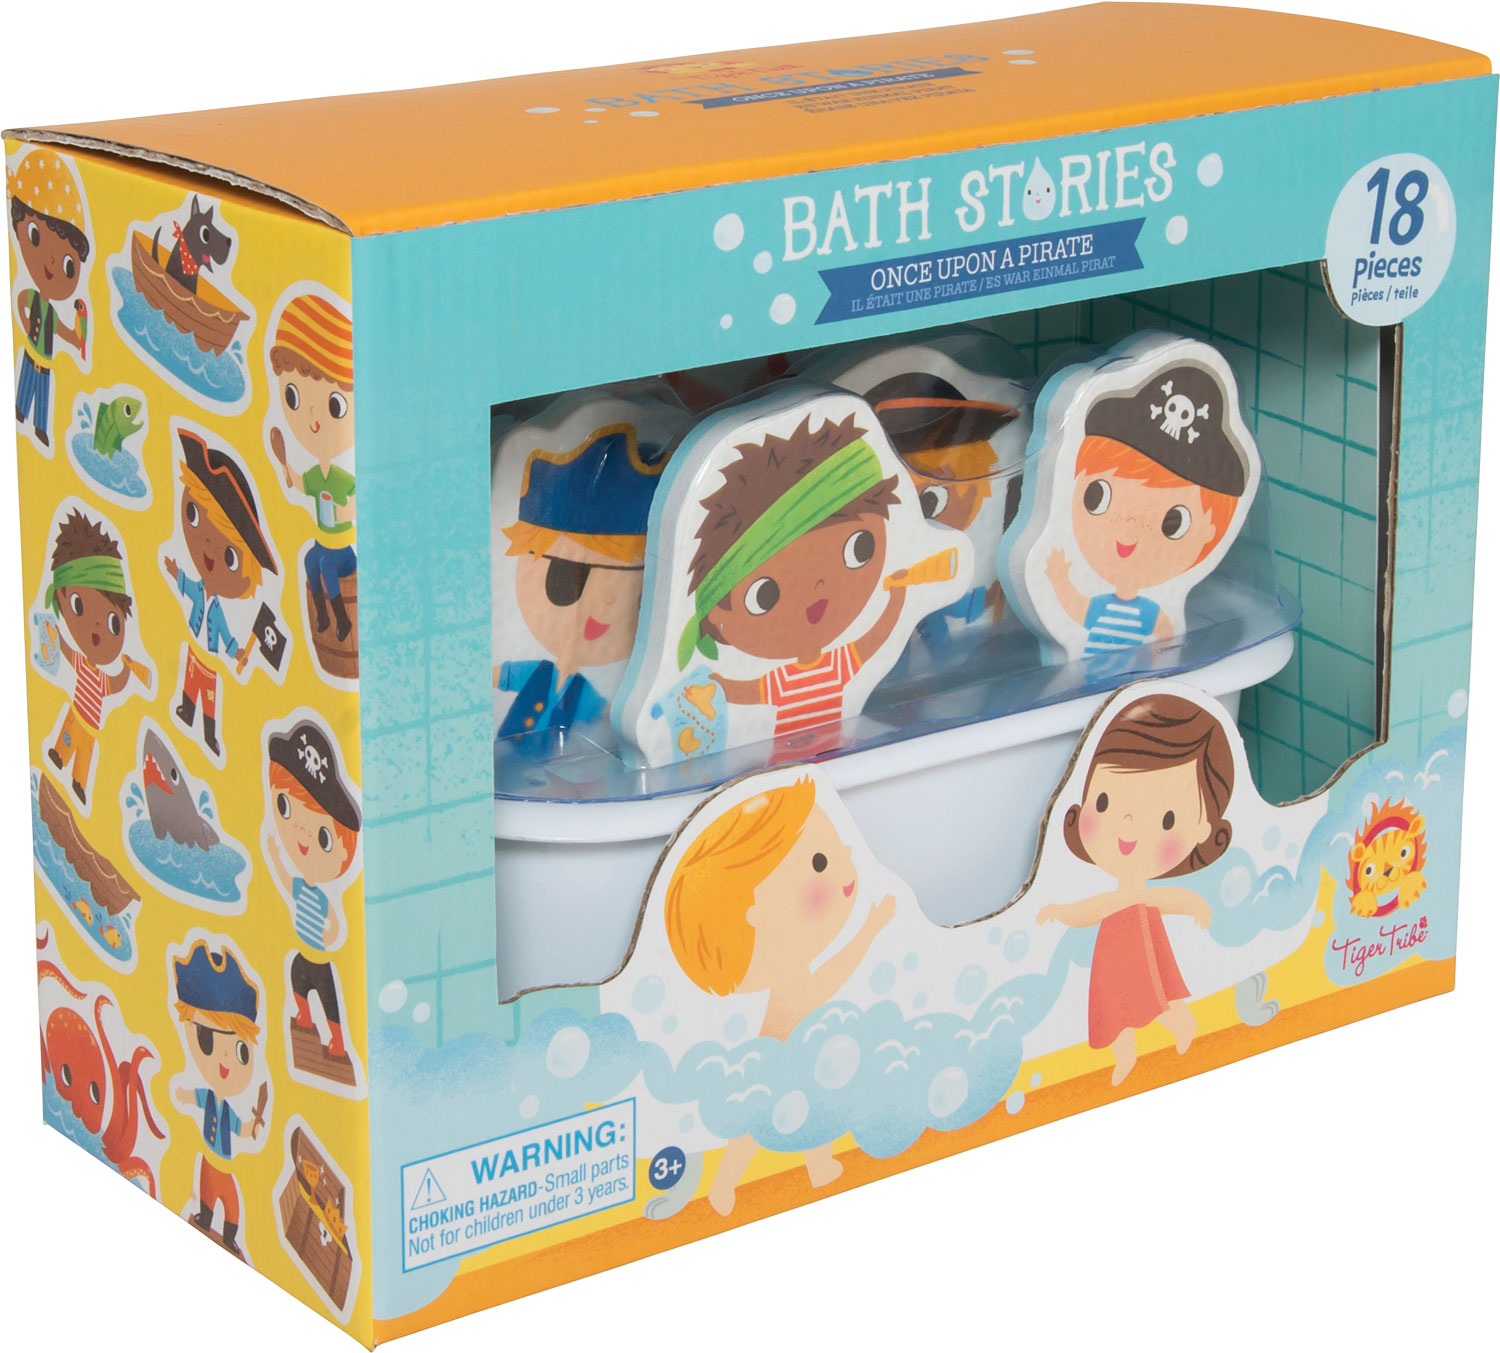 Pirate Bath Stories - Olde Towne Toys